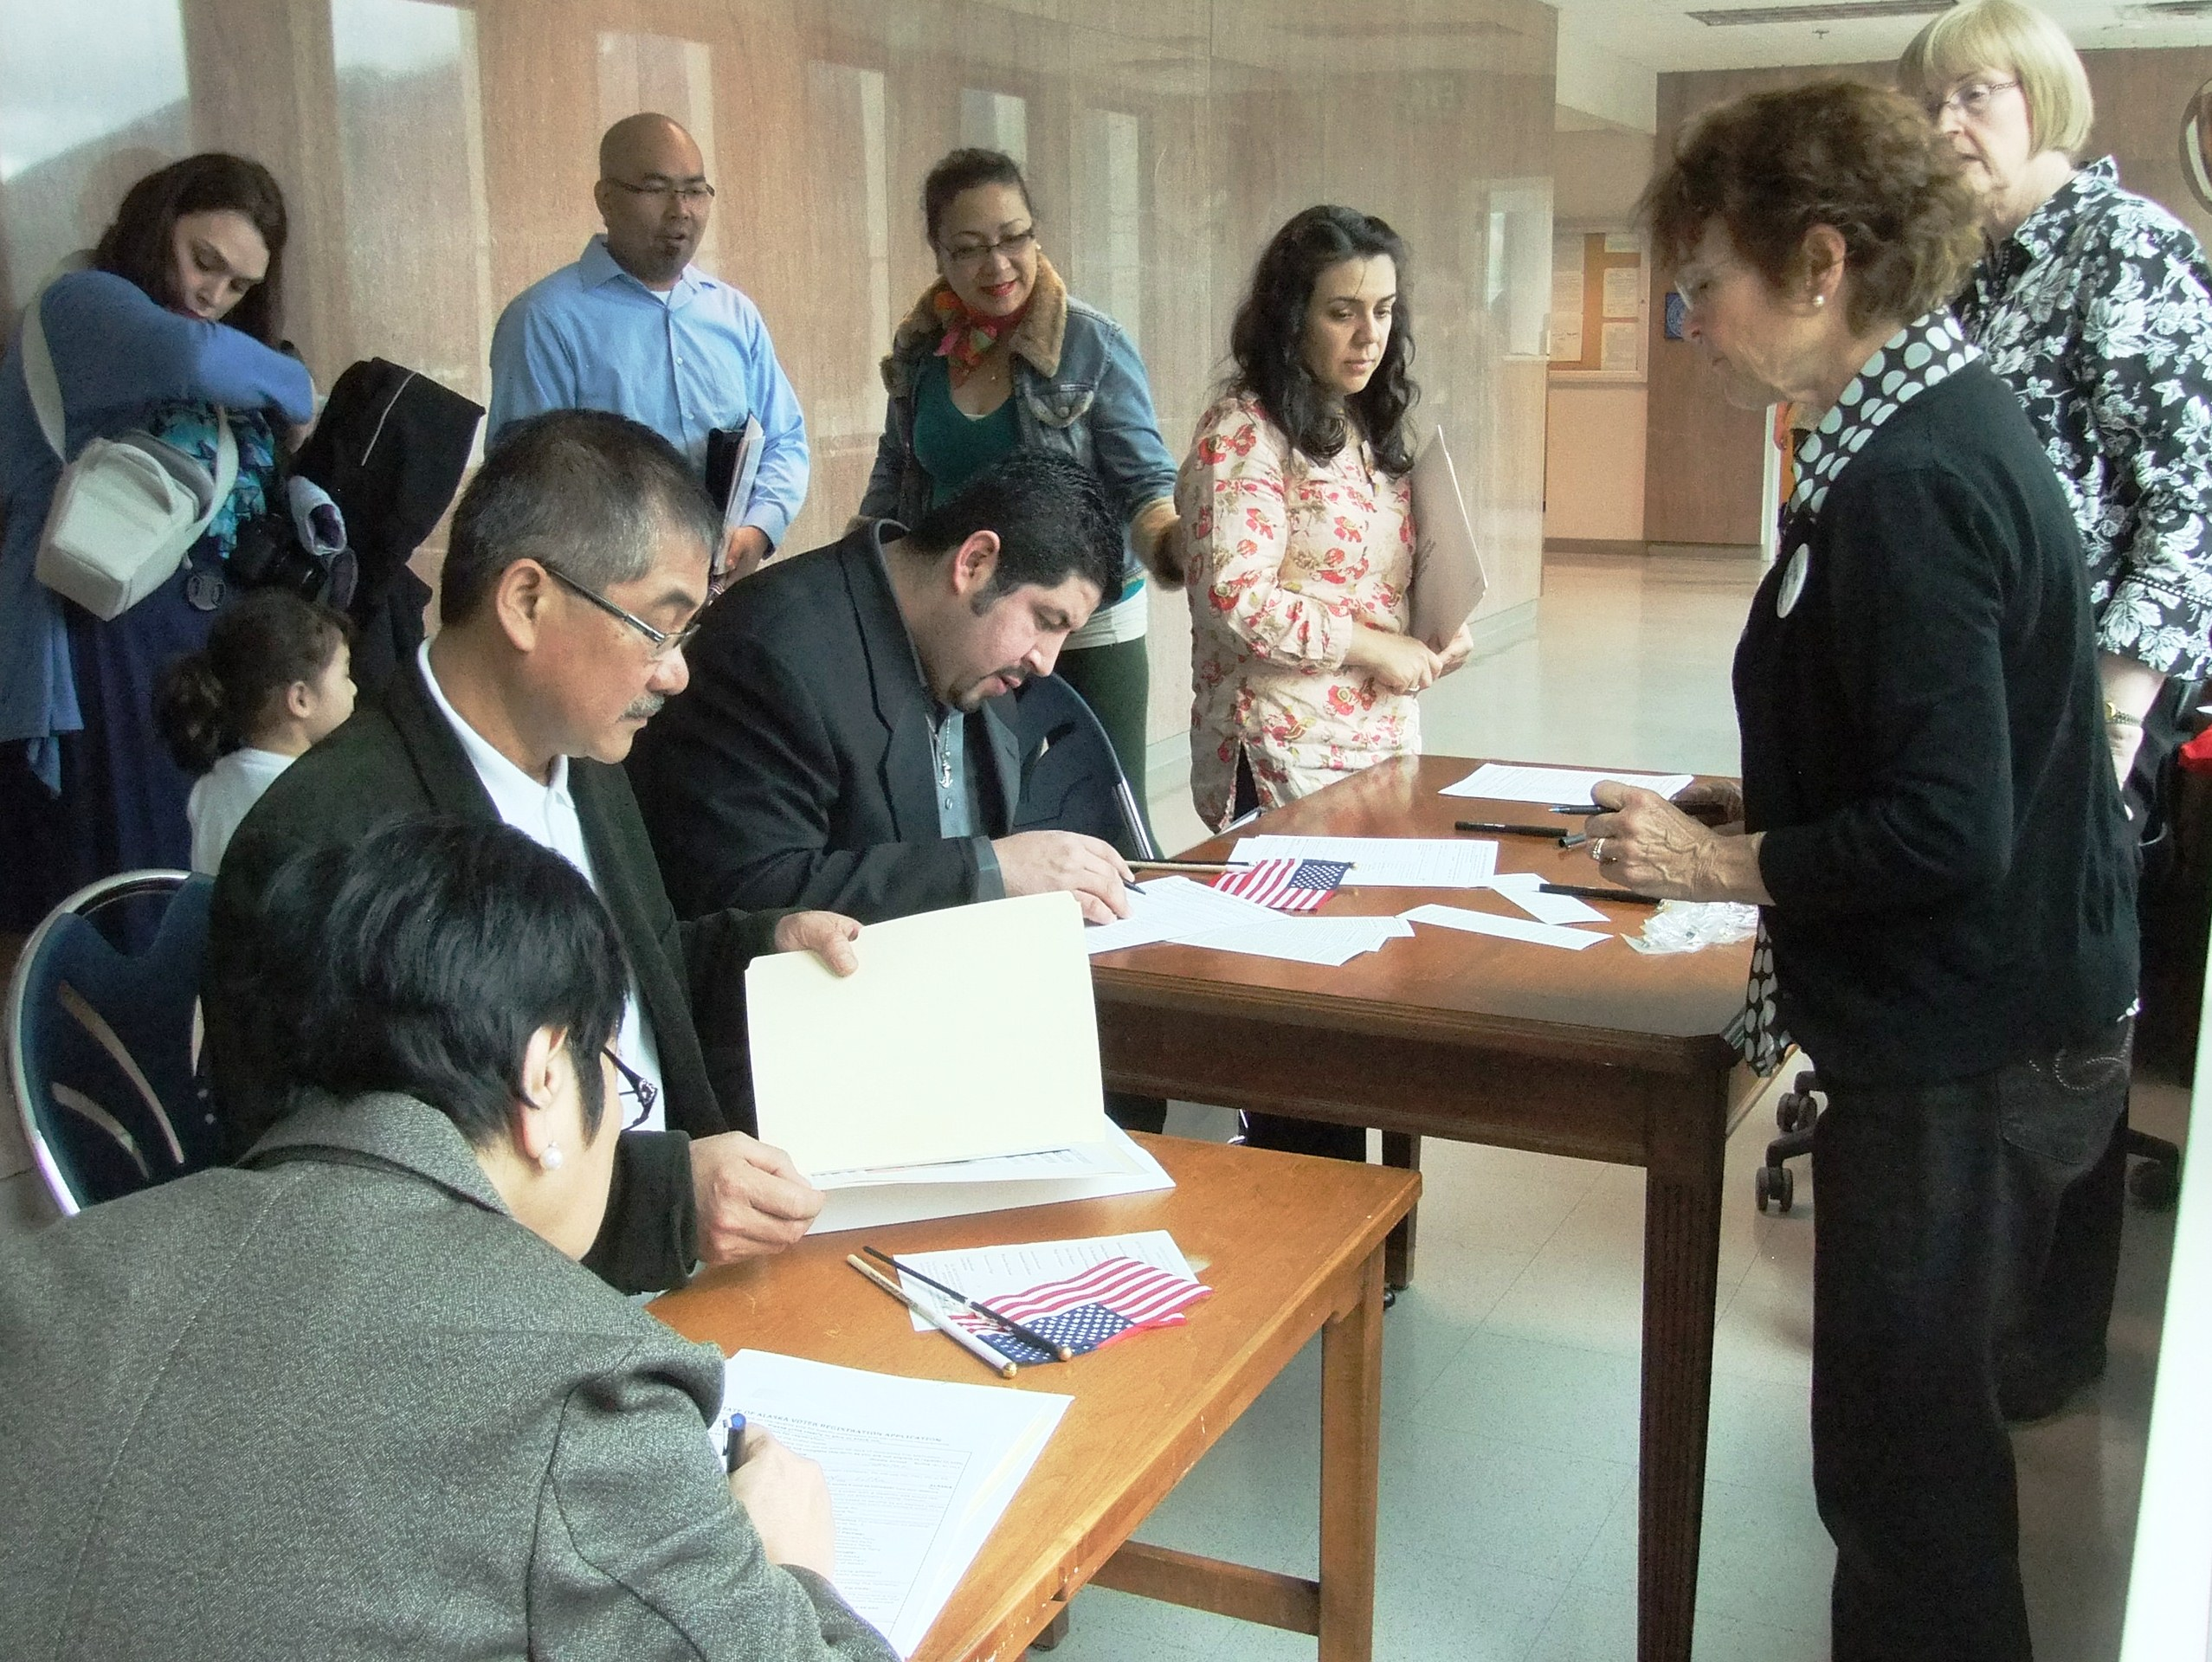 The new American citizens registered to vote before leaving the courthouse. (Photo by Rosemarie Alexander/KTOO)